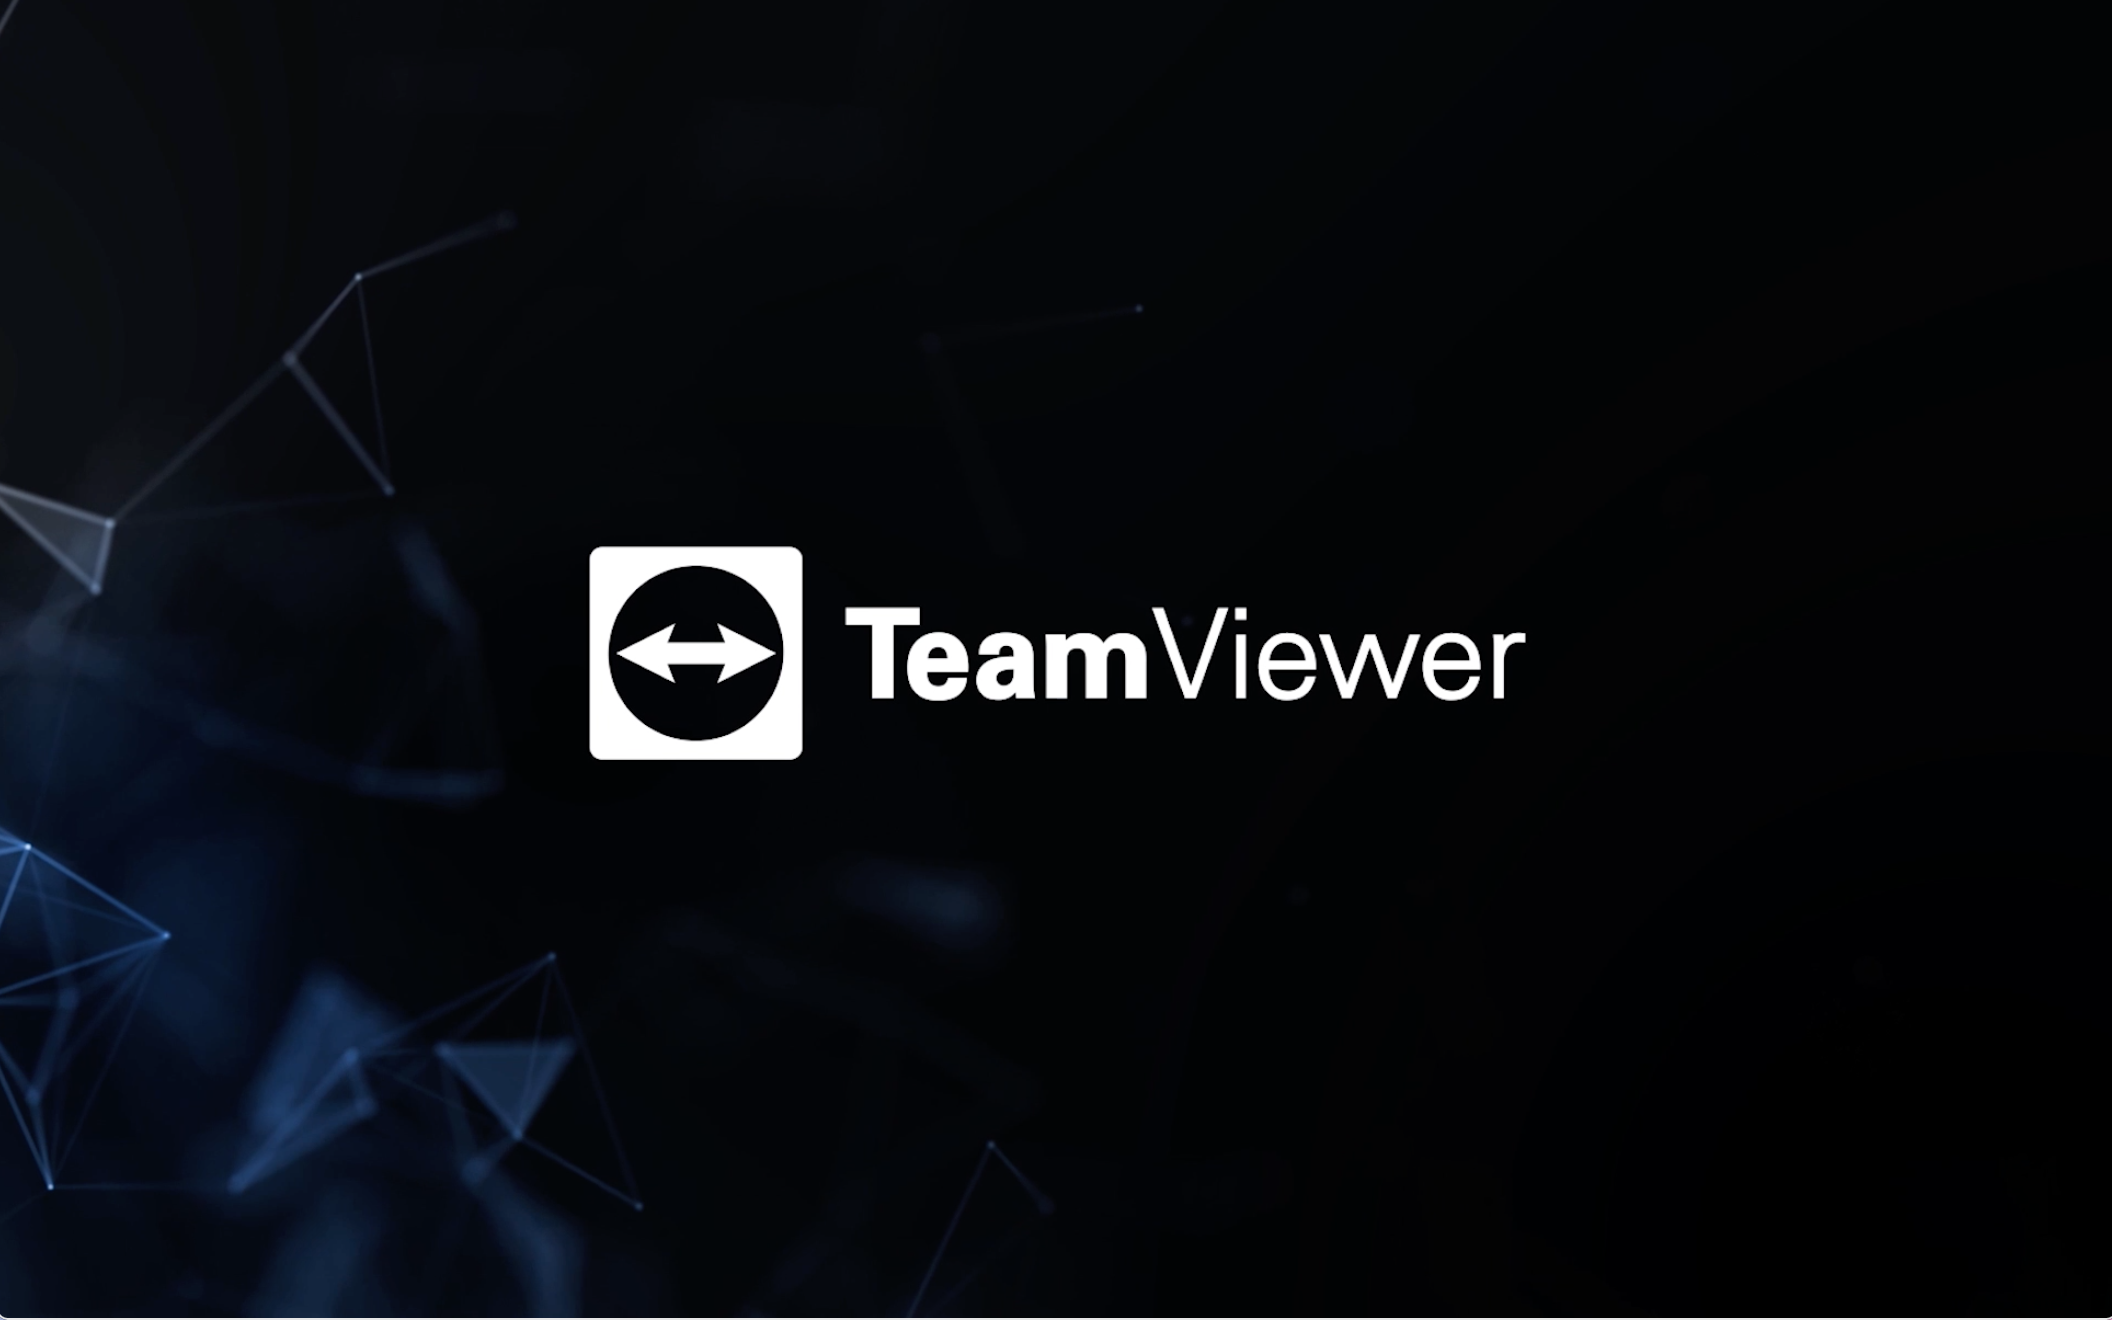 TeamViewer Integration with ServiceNow